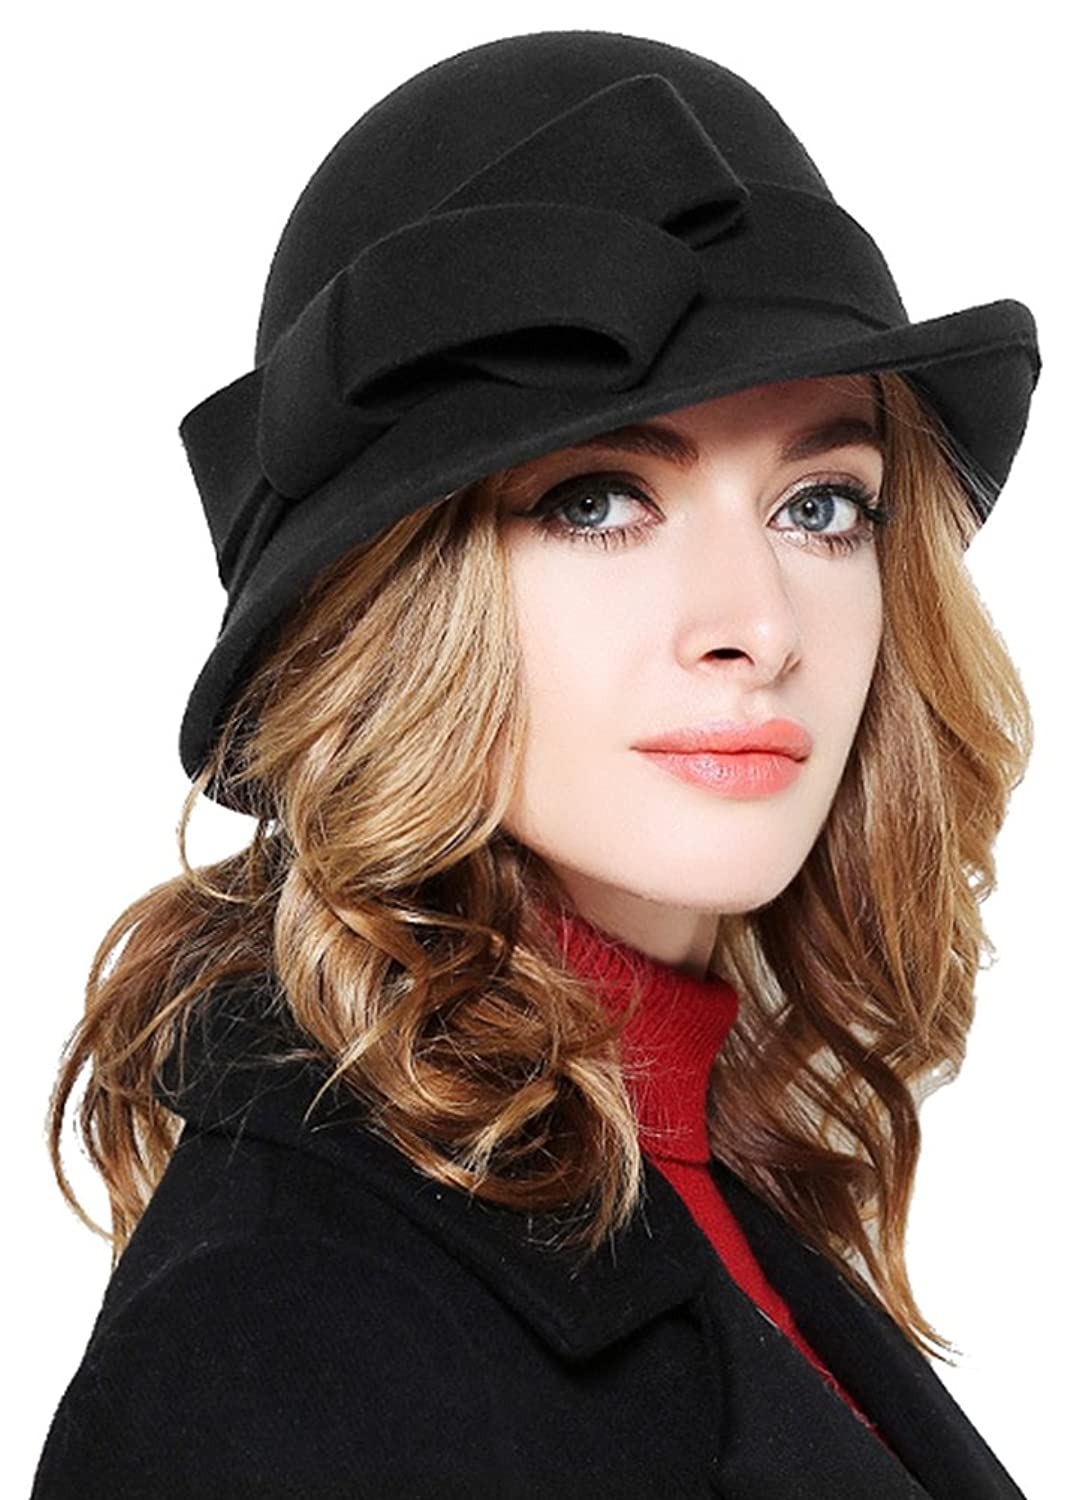 1930s Style Hats | Buy 30s Ladies Hats Bellady Women Solid Color Winter Hat 100% Wool Cloche Bucket with Bow Accent $21.99 AT vintagedancer.com